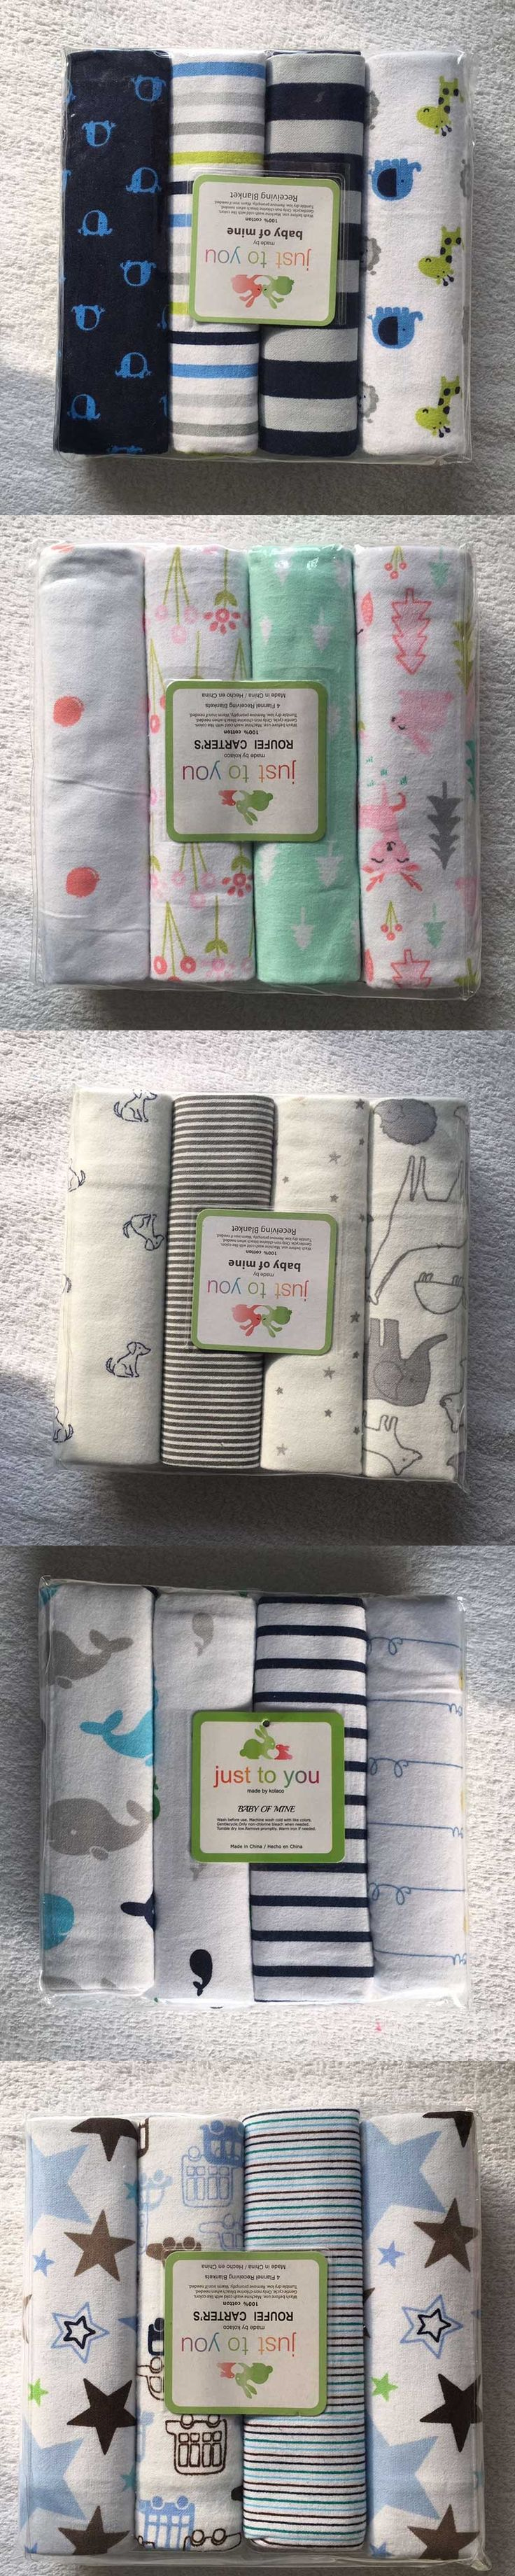 16 best Baby Bedding images on Pinterest